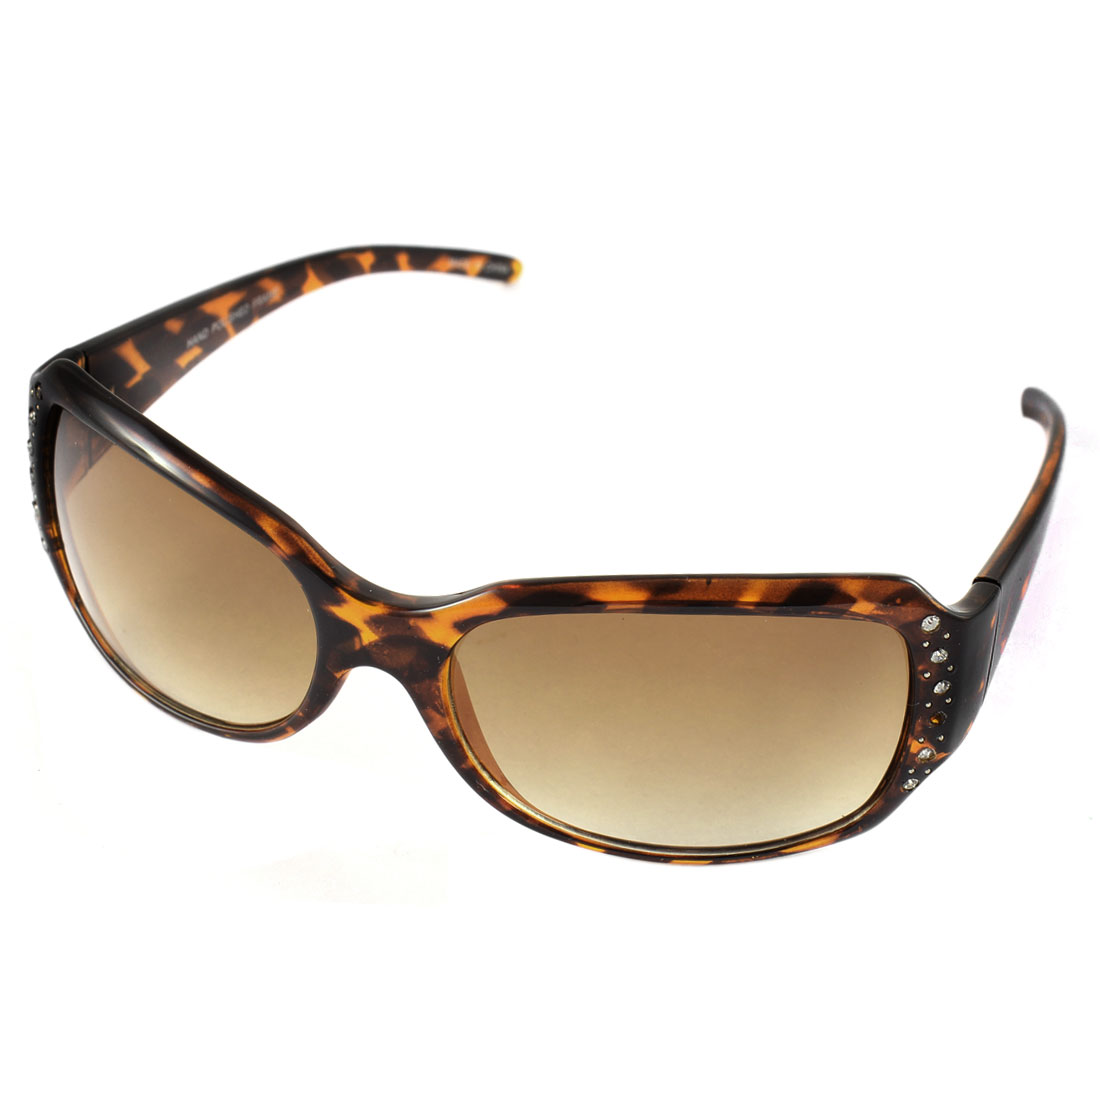 Women Leopard Style Single Bridge Sun Glasses Outdoor Eye Wear Brown